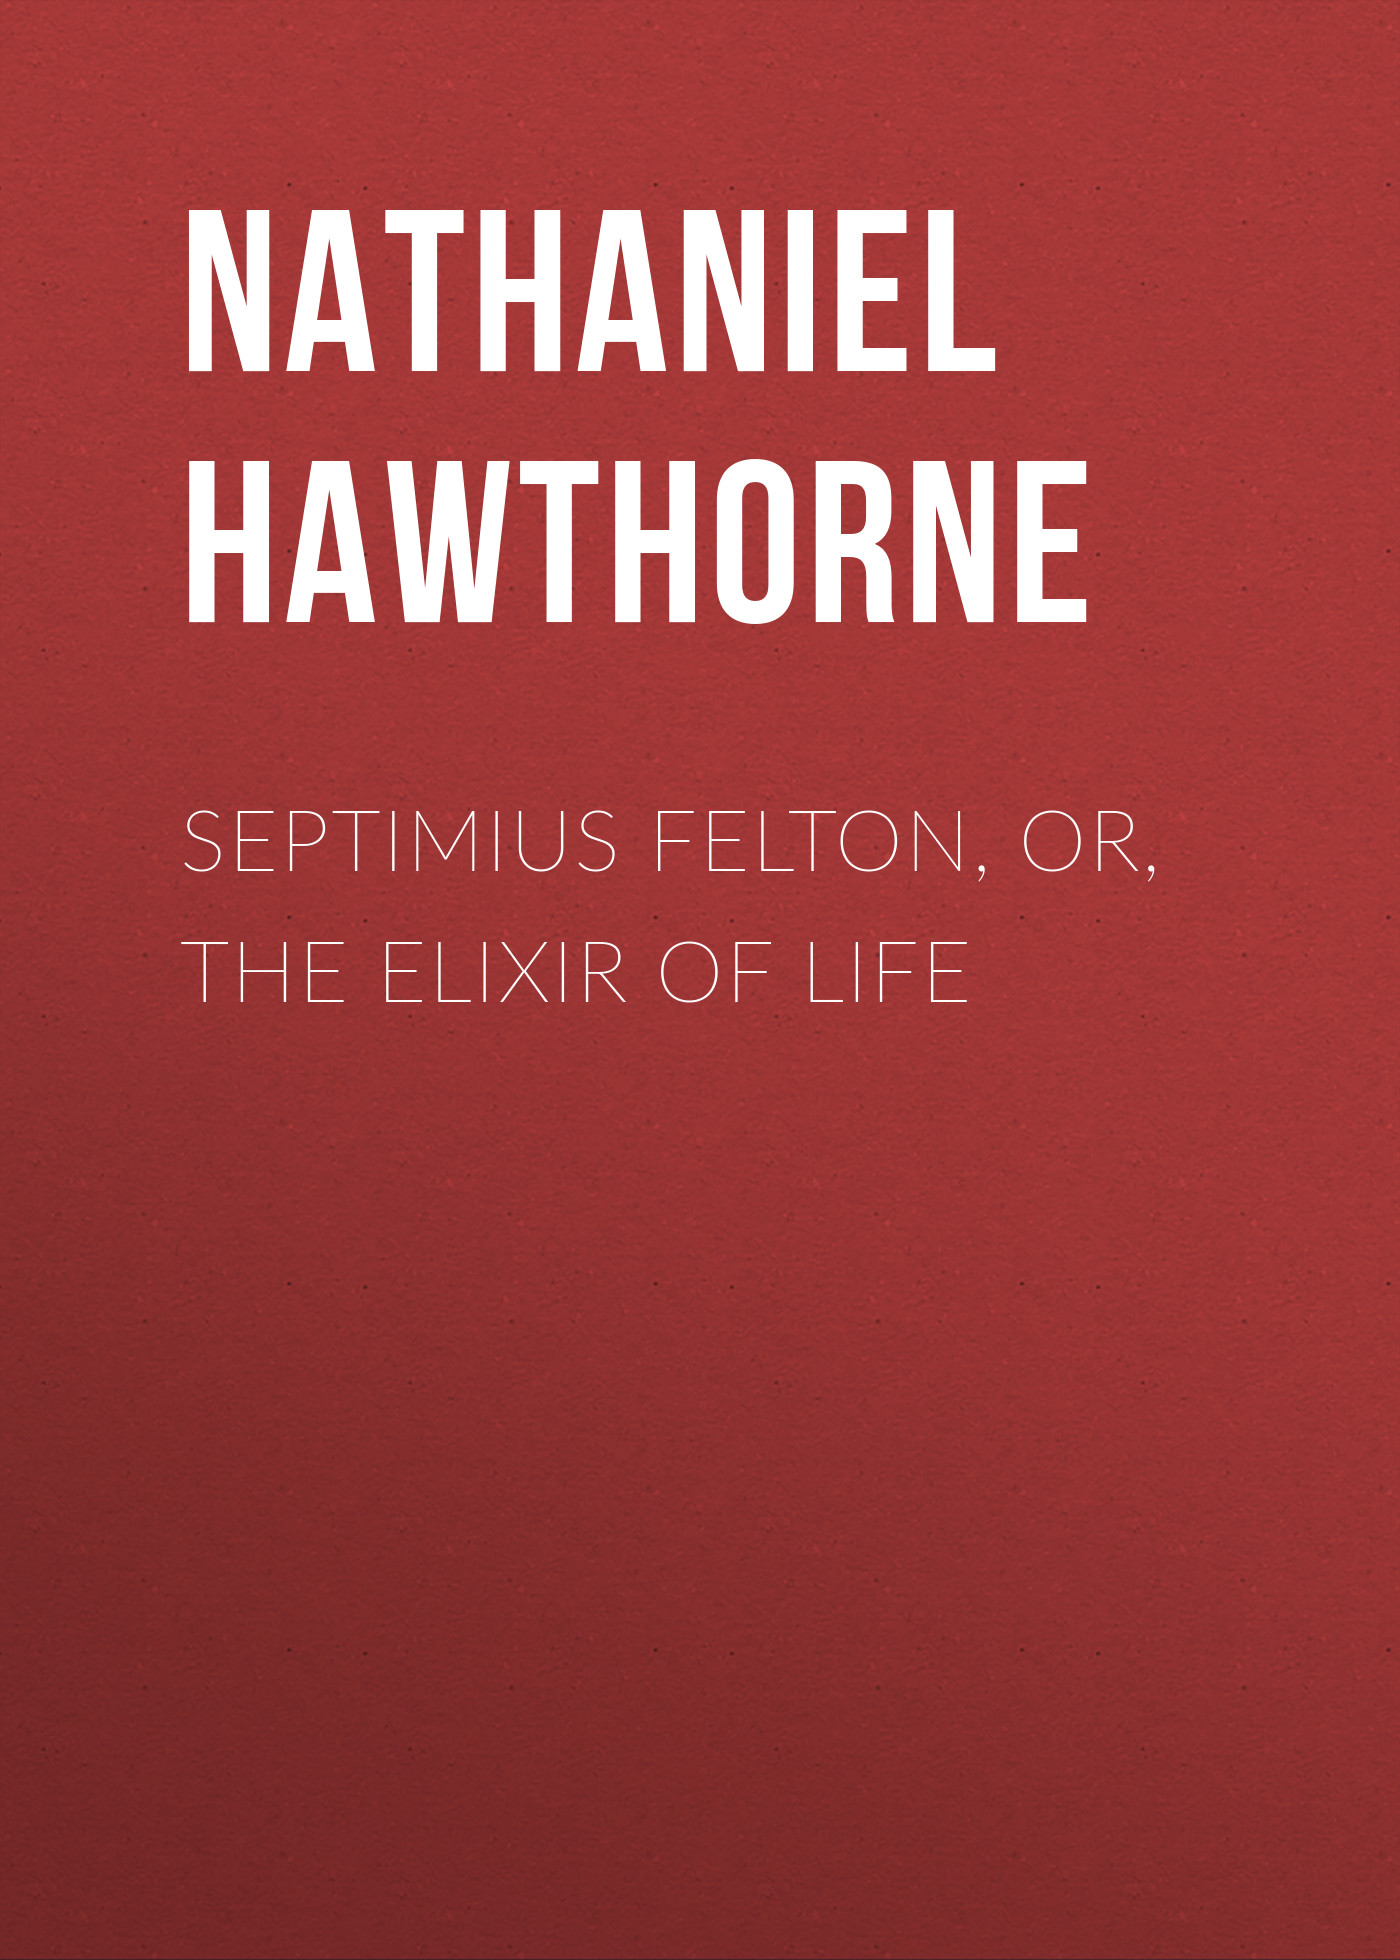 Nathaniel Hawthorne Septimius Felton, or, the Elixir of Life hawthorne nathaniel the marble faun or the romance of monte beni volume 2